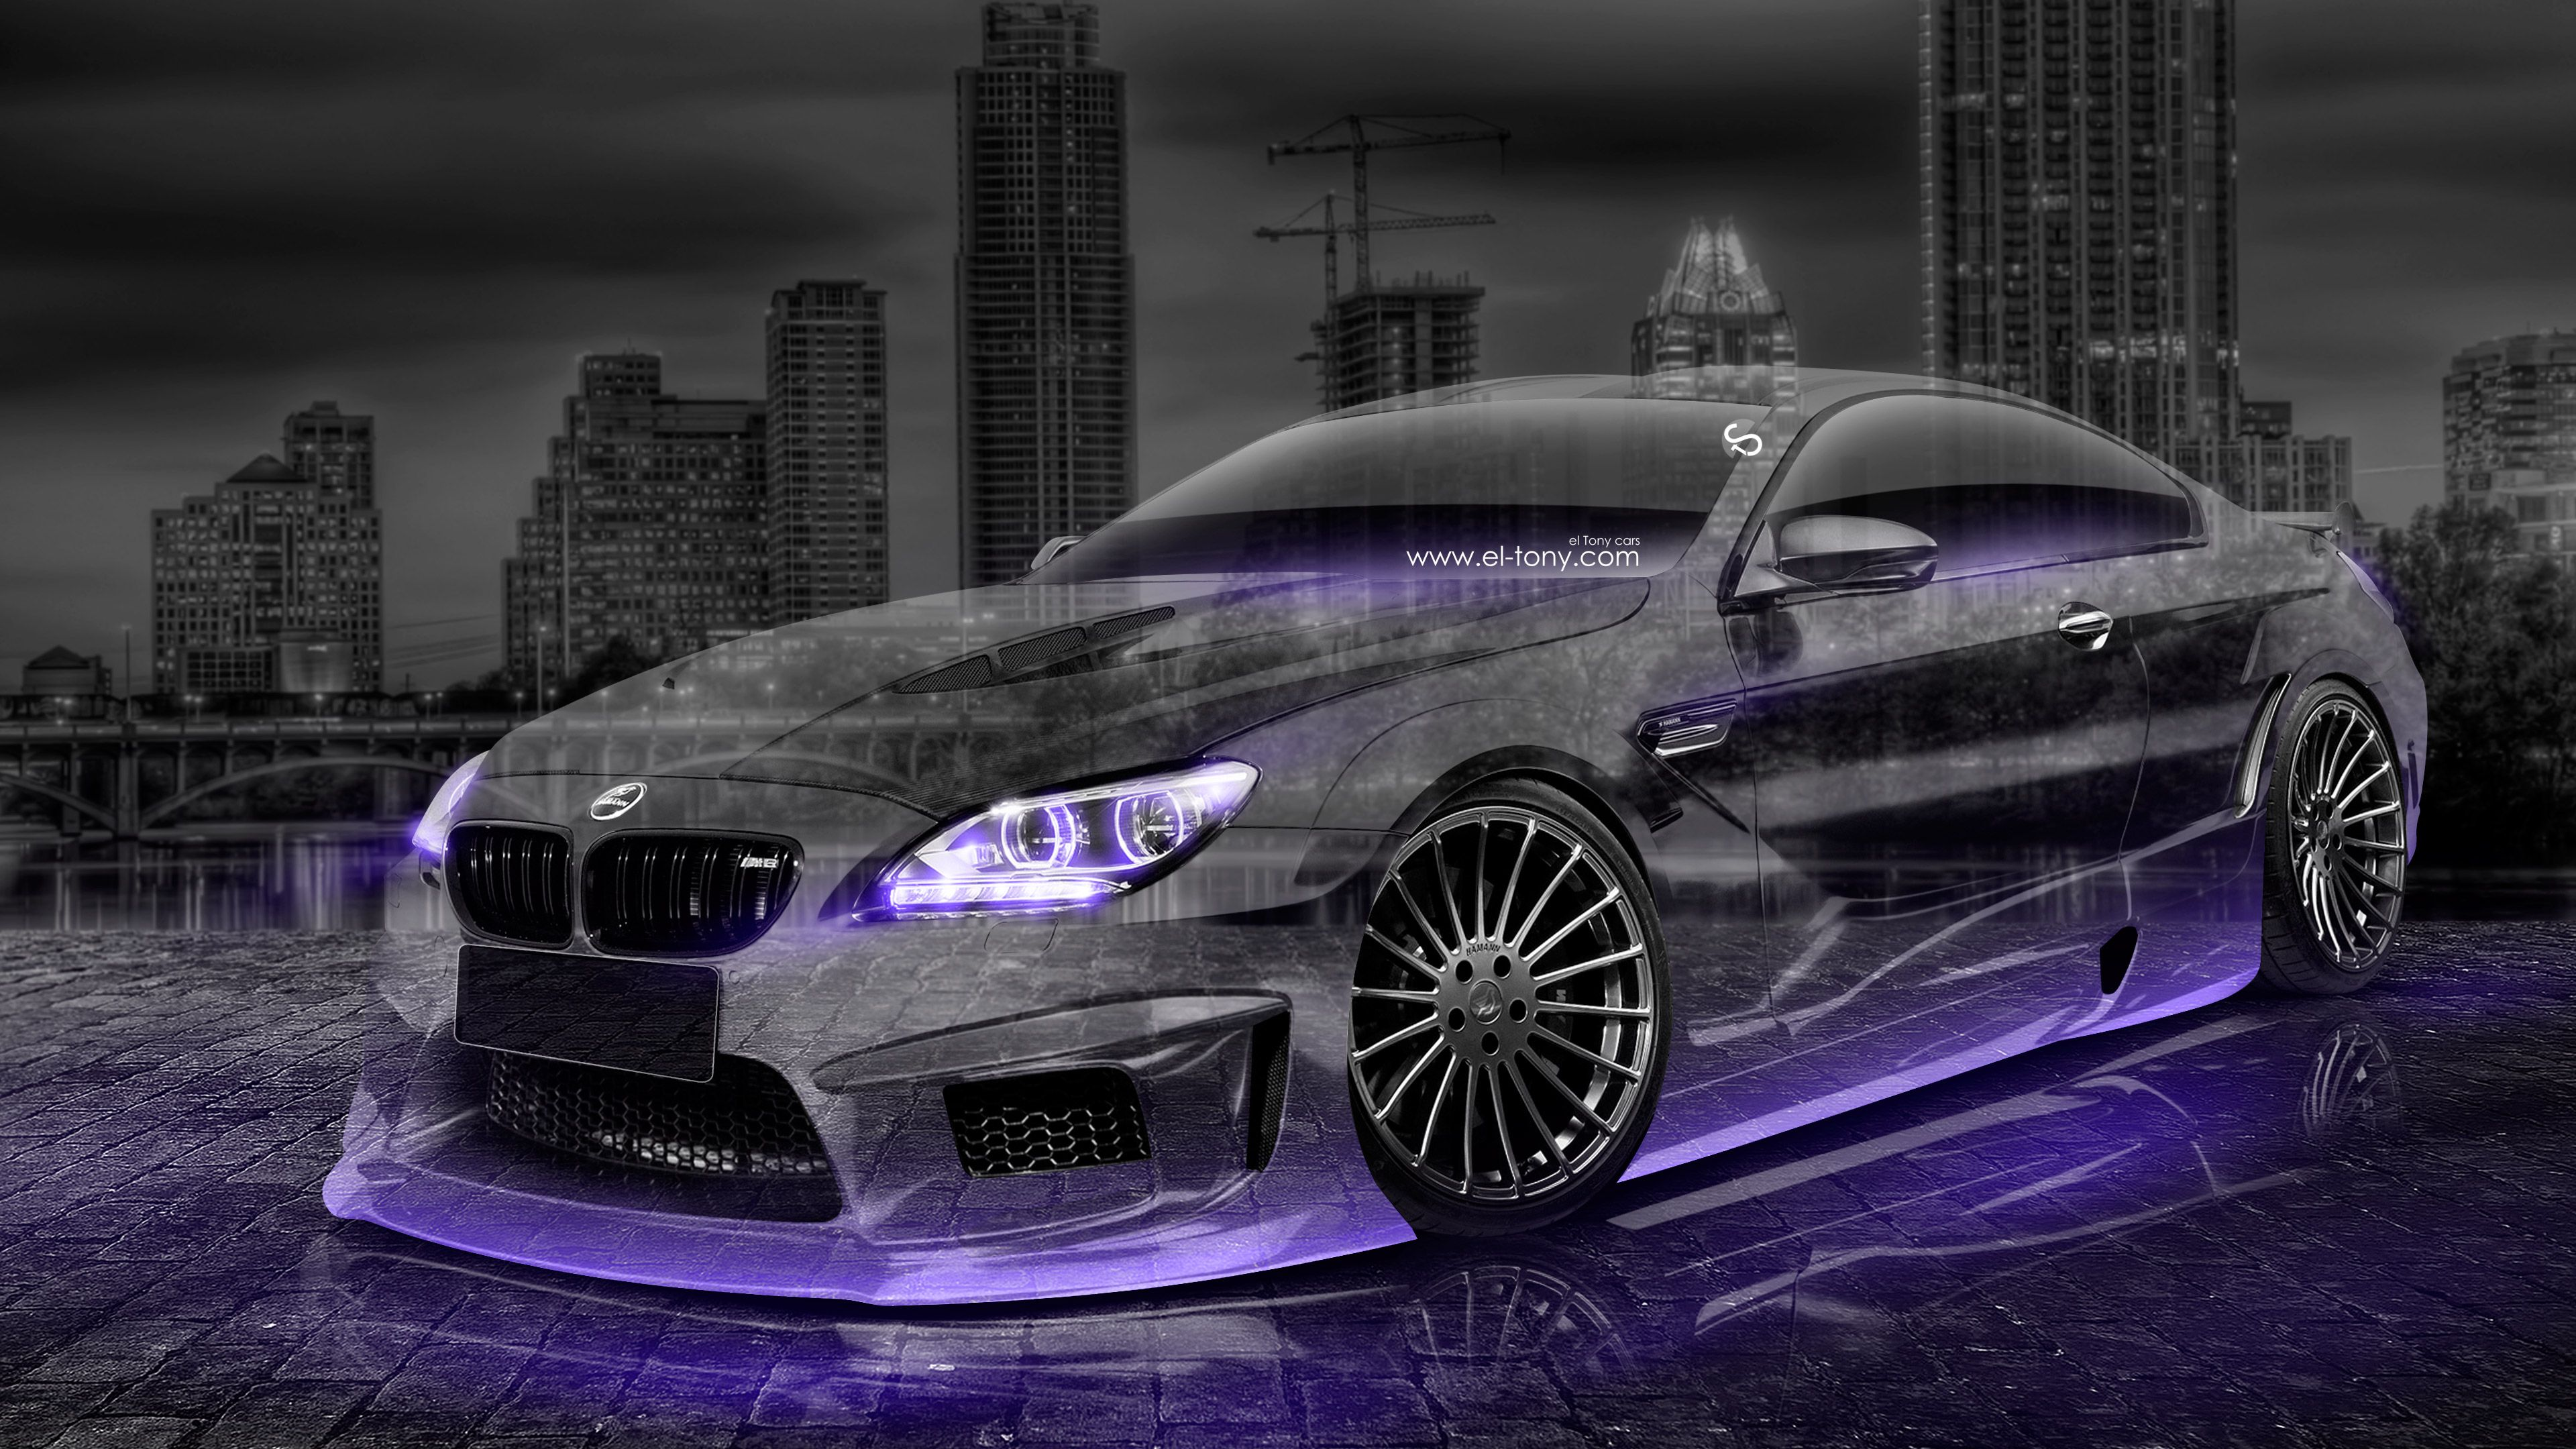 Ordinaire BMW M6 Hamann Tuning 3D Anime Girl Music Aerography Car 2015 Art Pink Neon Effects HD Wallpapers Design By Tony Kokhan Www.el Tony.com Image  | Pinterest ...